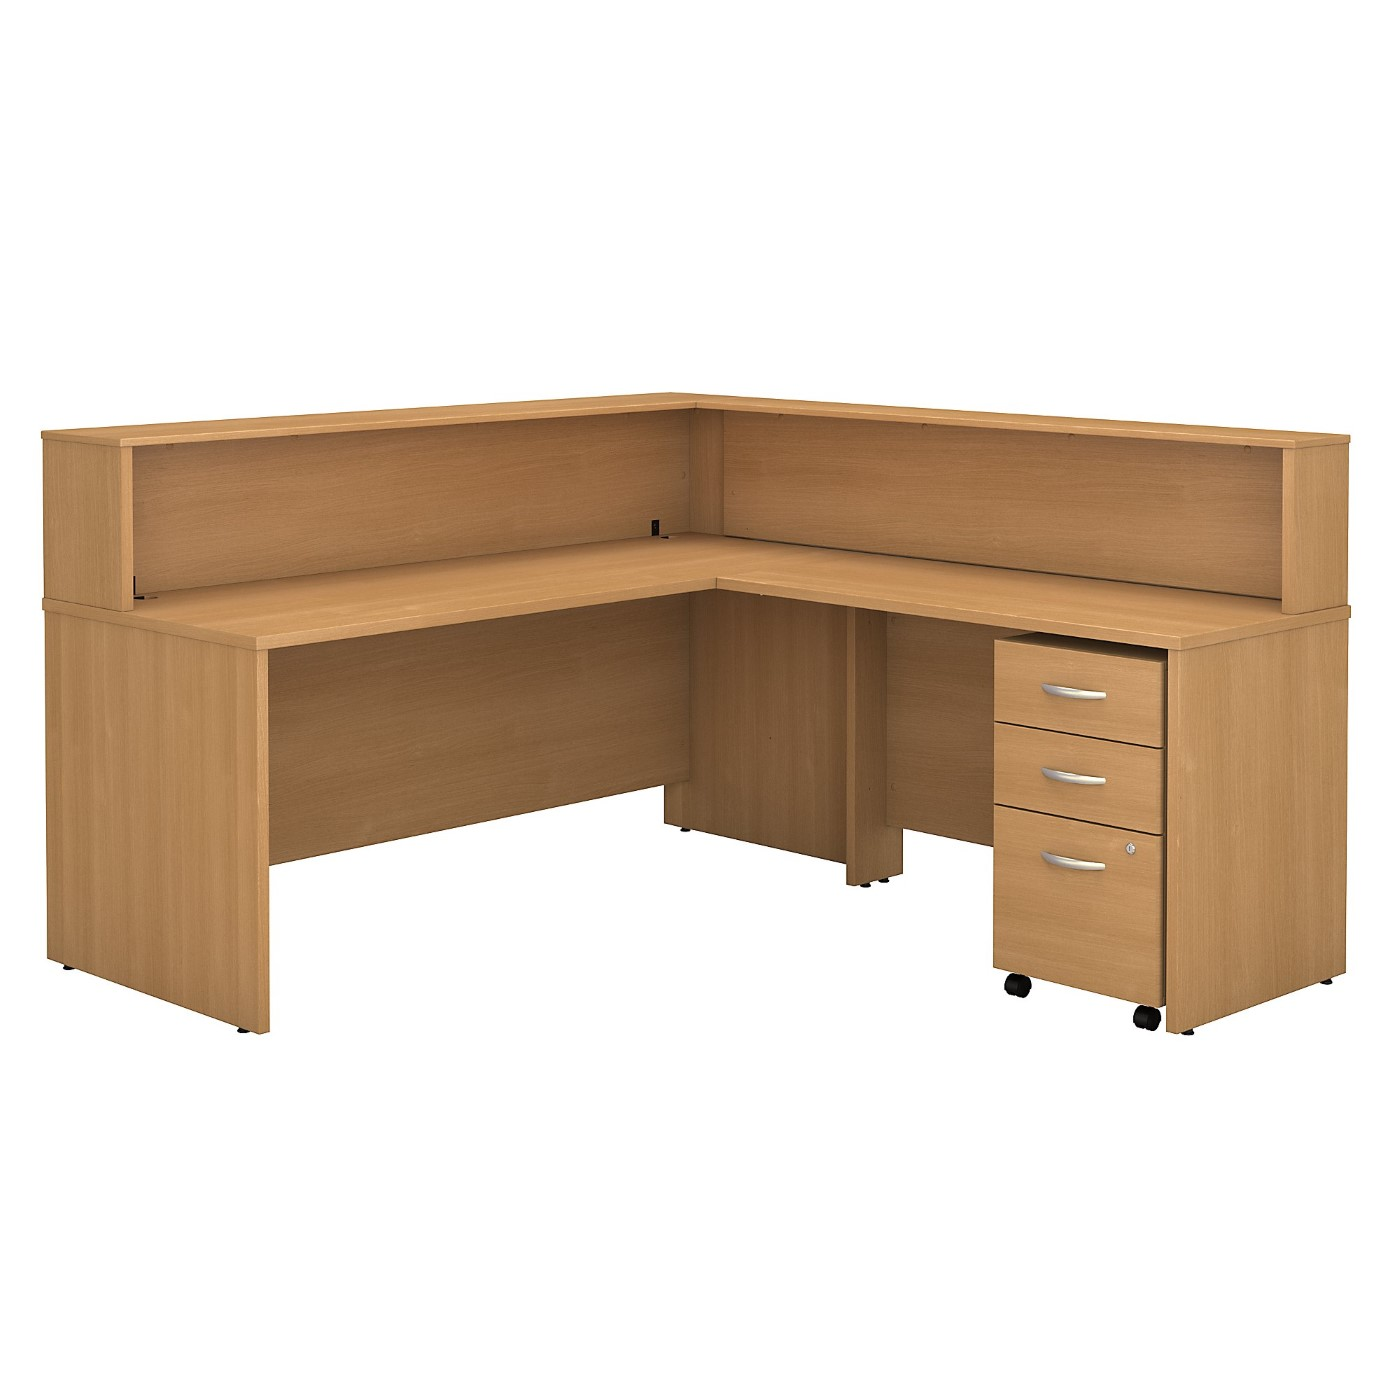 BUSH BUSINESS FURNITURE SERIES C L SHAPED RECEPTION DESK WITH MOBILE FILE CABINET. FREE SHIPPING SALE DEDUCT 10% MORE ENTER '10percent' IN COUPON CODE BOX WHILE CHECKING OUT.